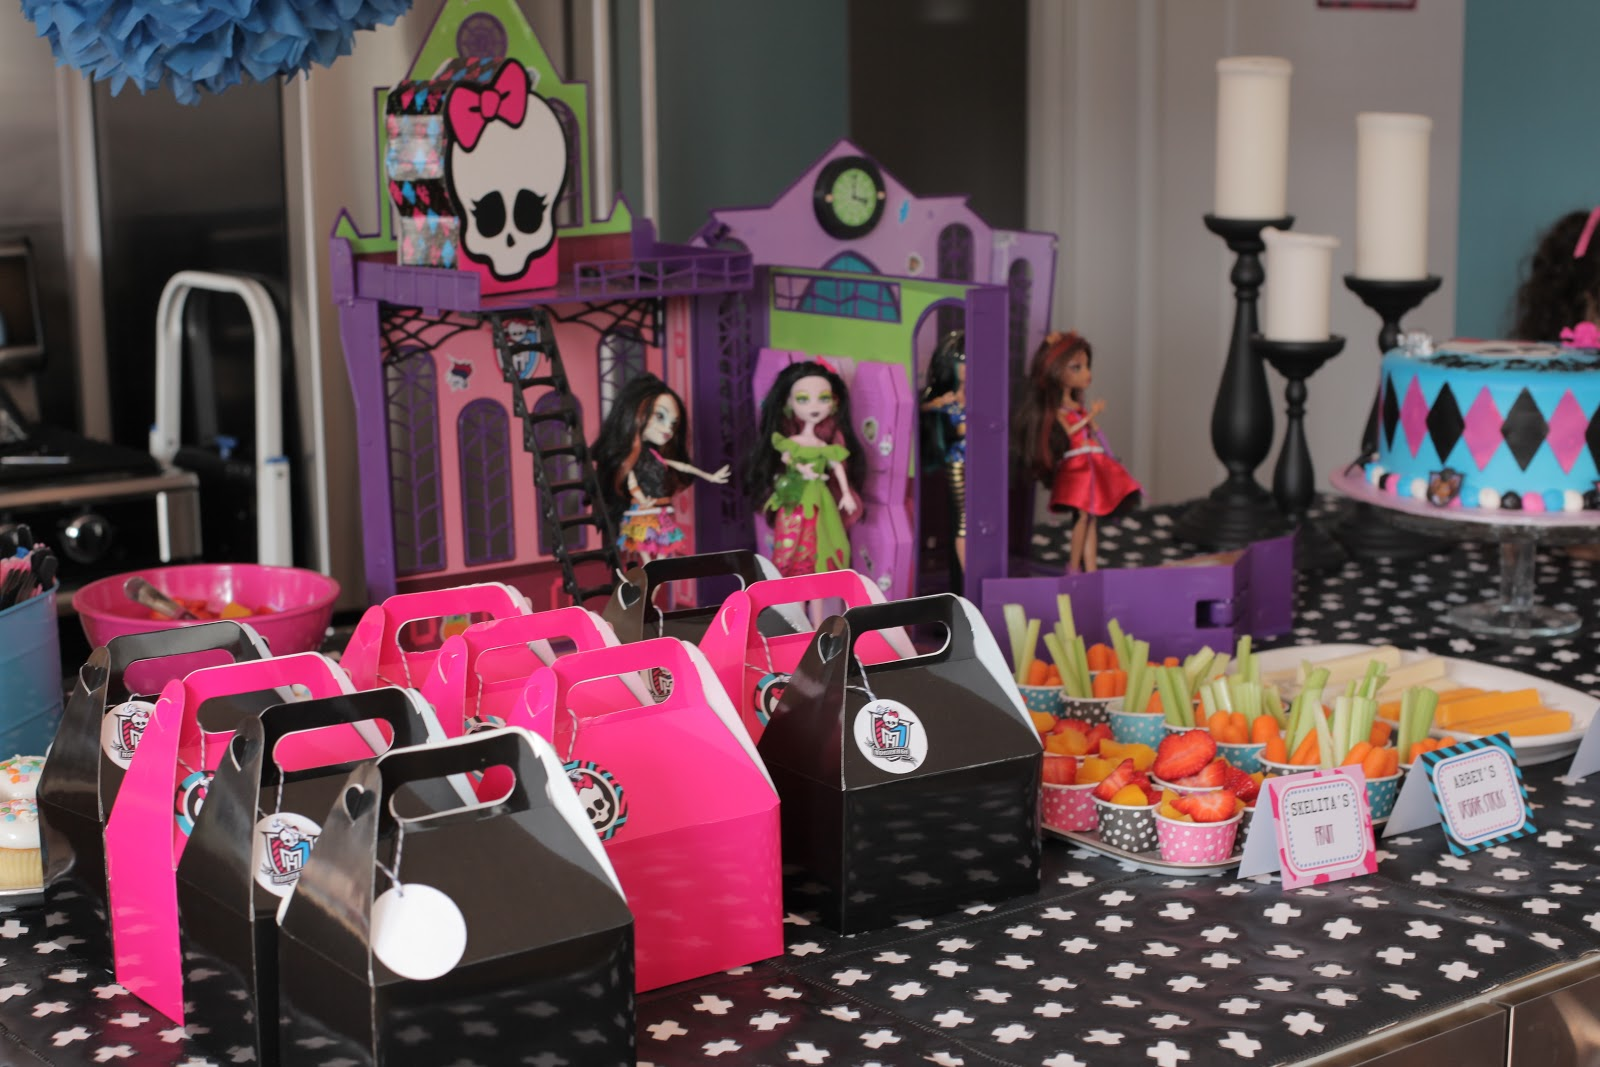 Neighborhood kids ava 39 s 7th monster high birthday party for Decoration ideas 7th birthday party